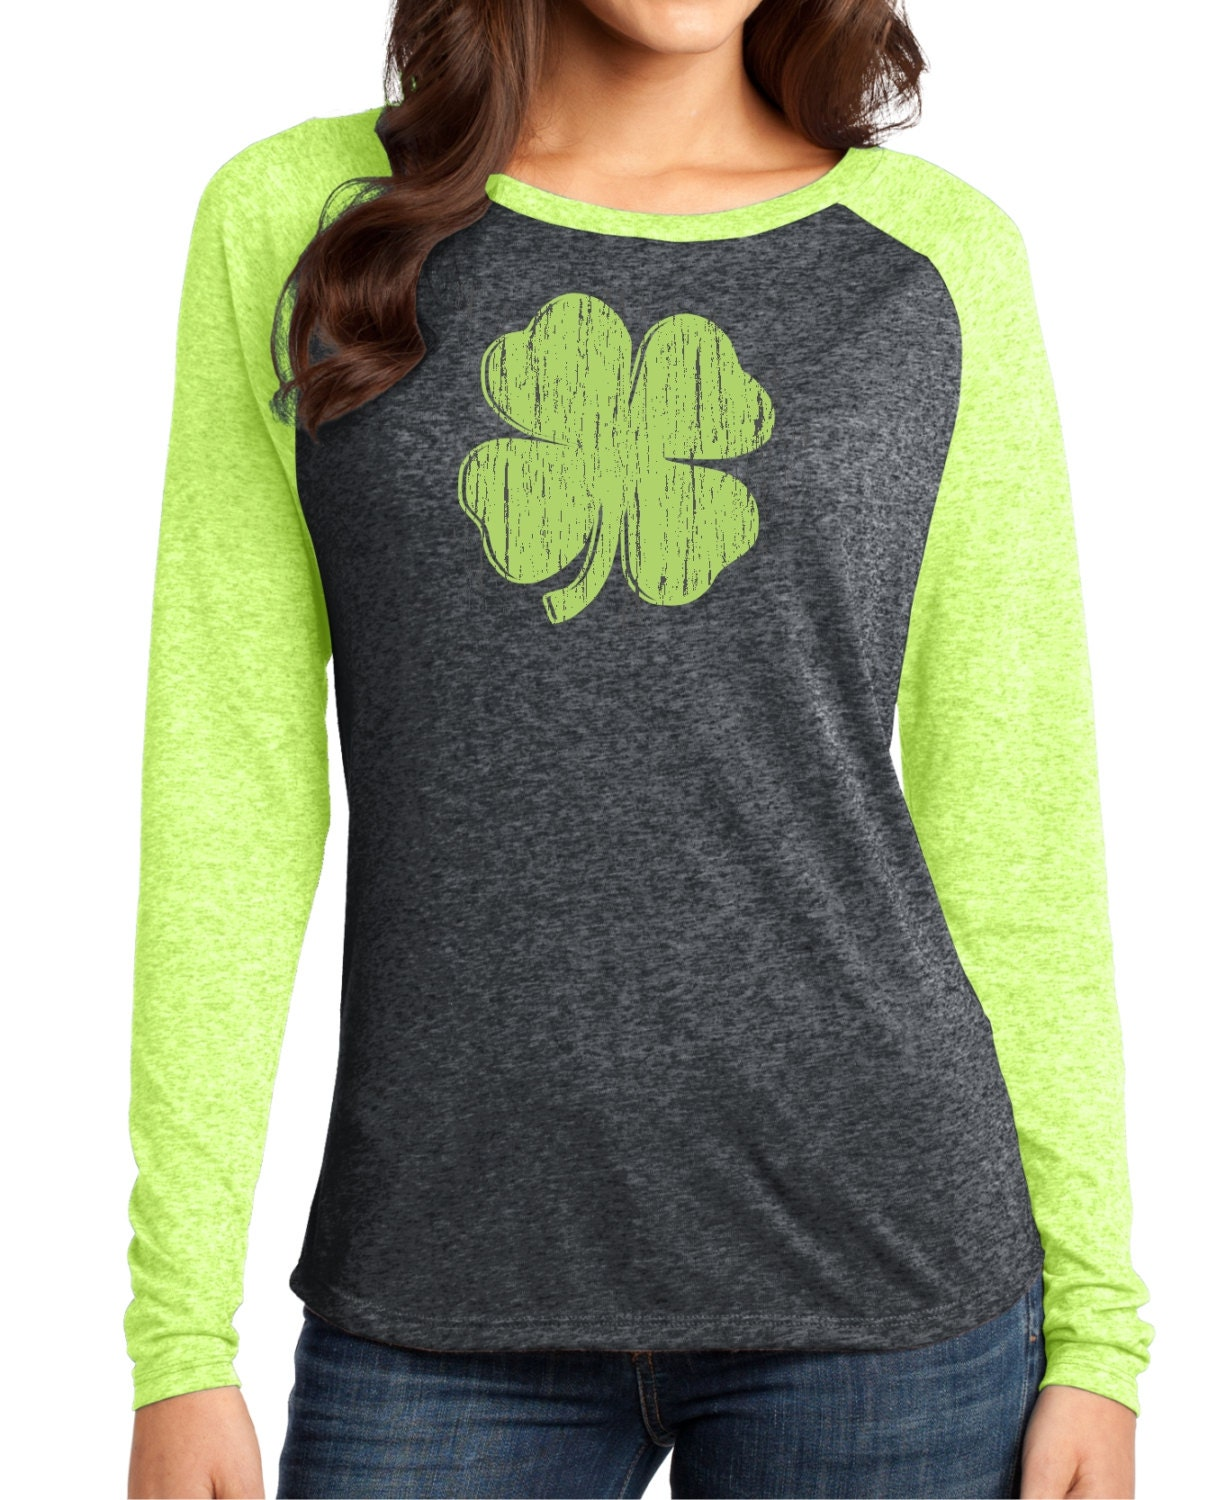 St Patrick 39 S Day Shirtfor Her Gift For Herladies St